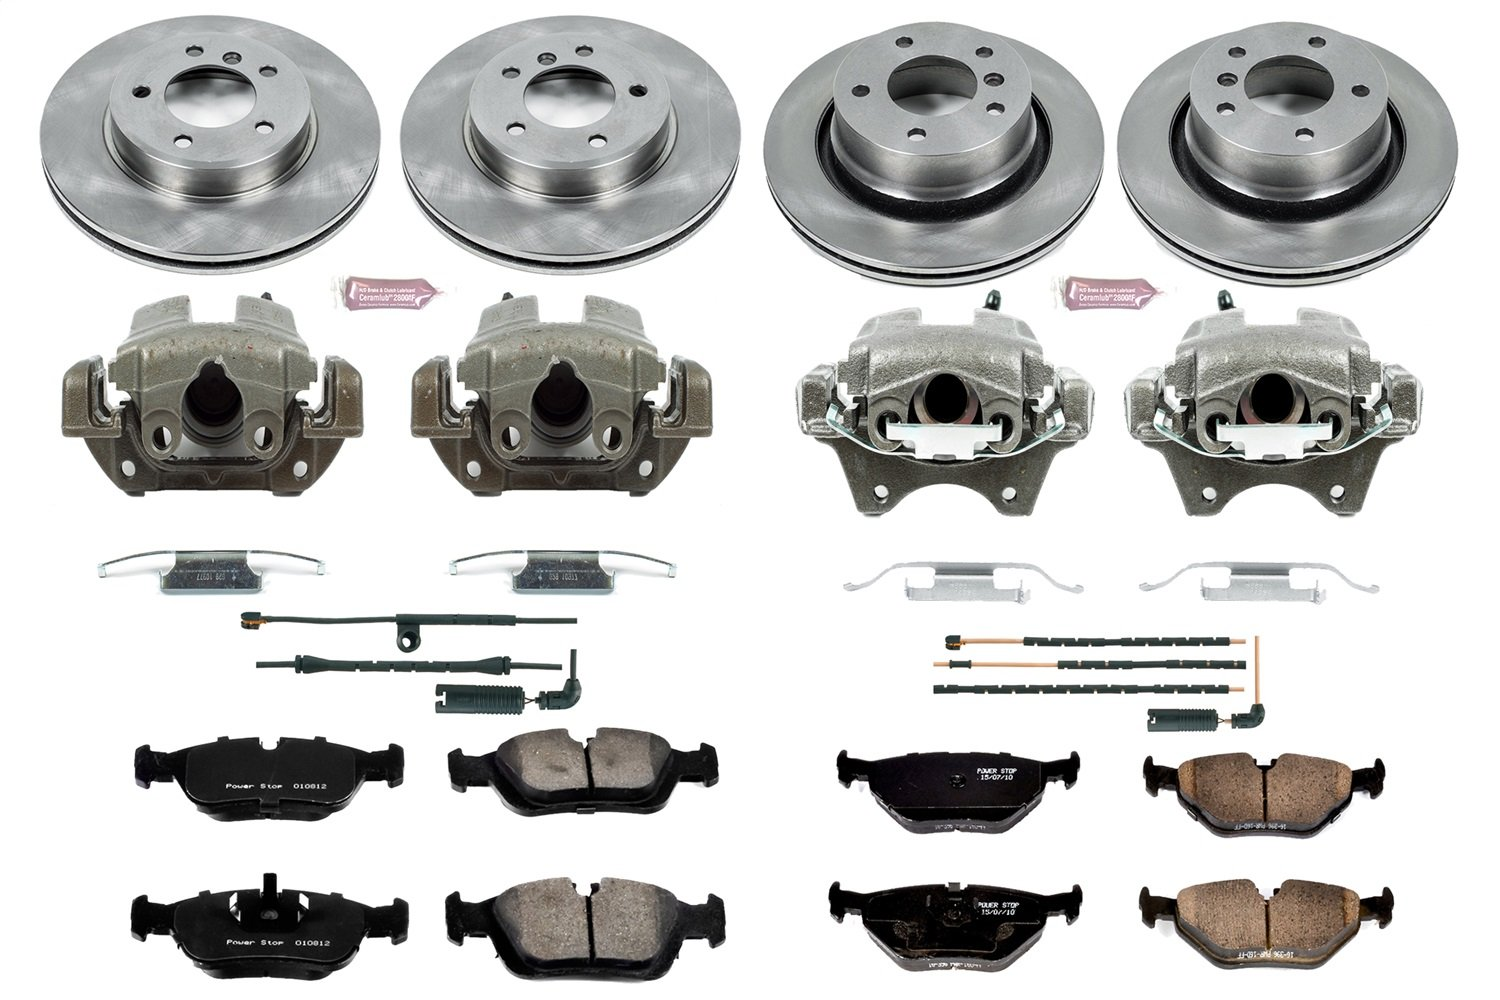 Power Stop KCOE873 Autospecialty 1-Click OE Replacement Brake Kit with Calipers